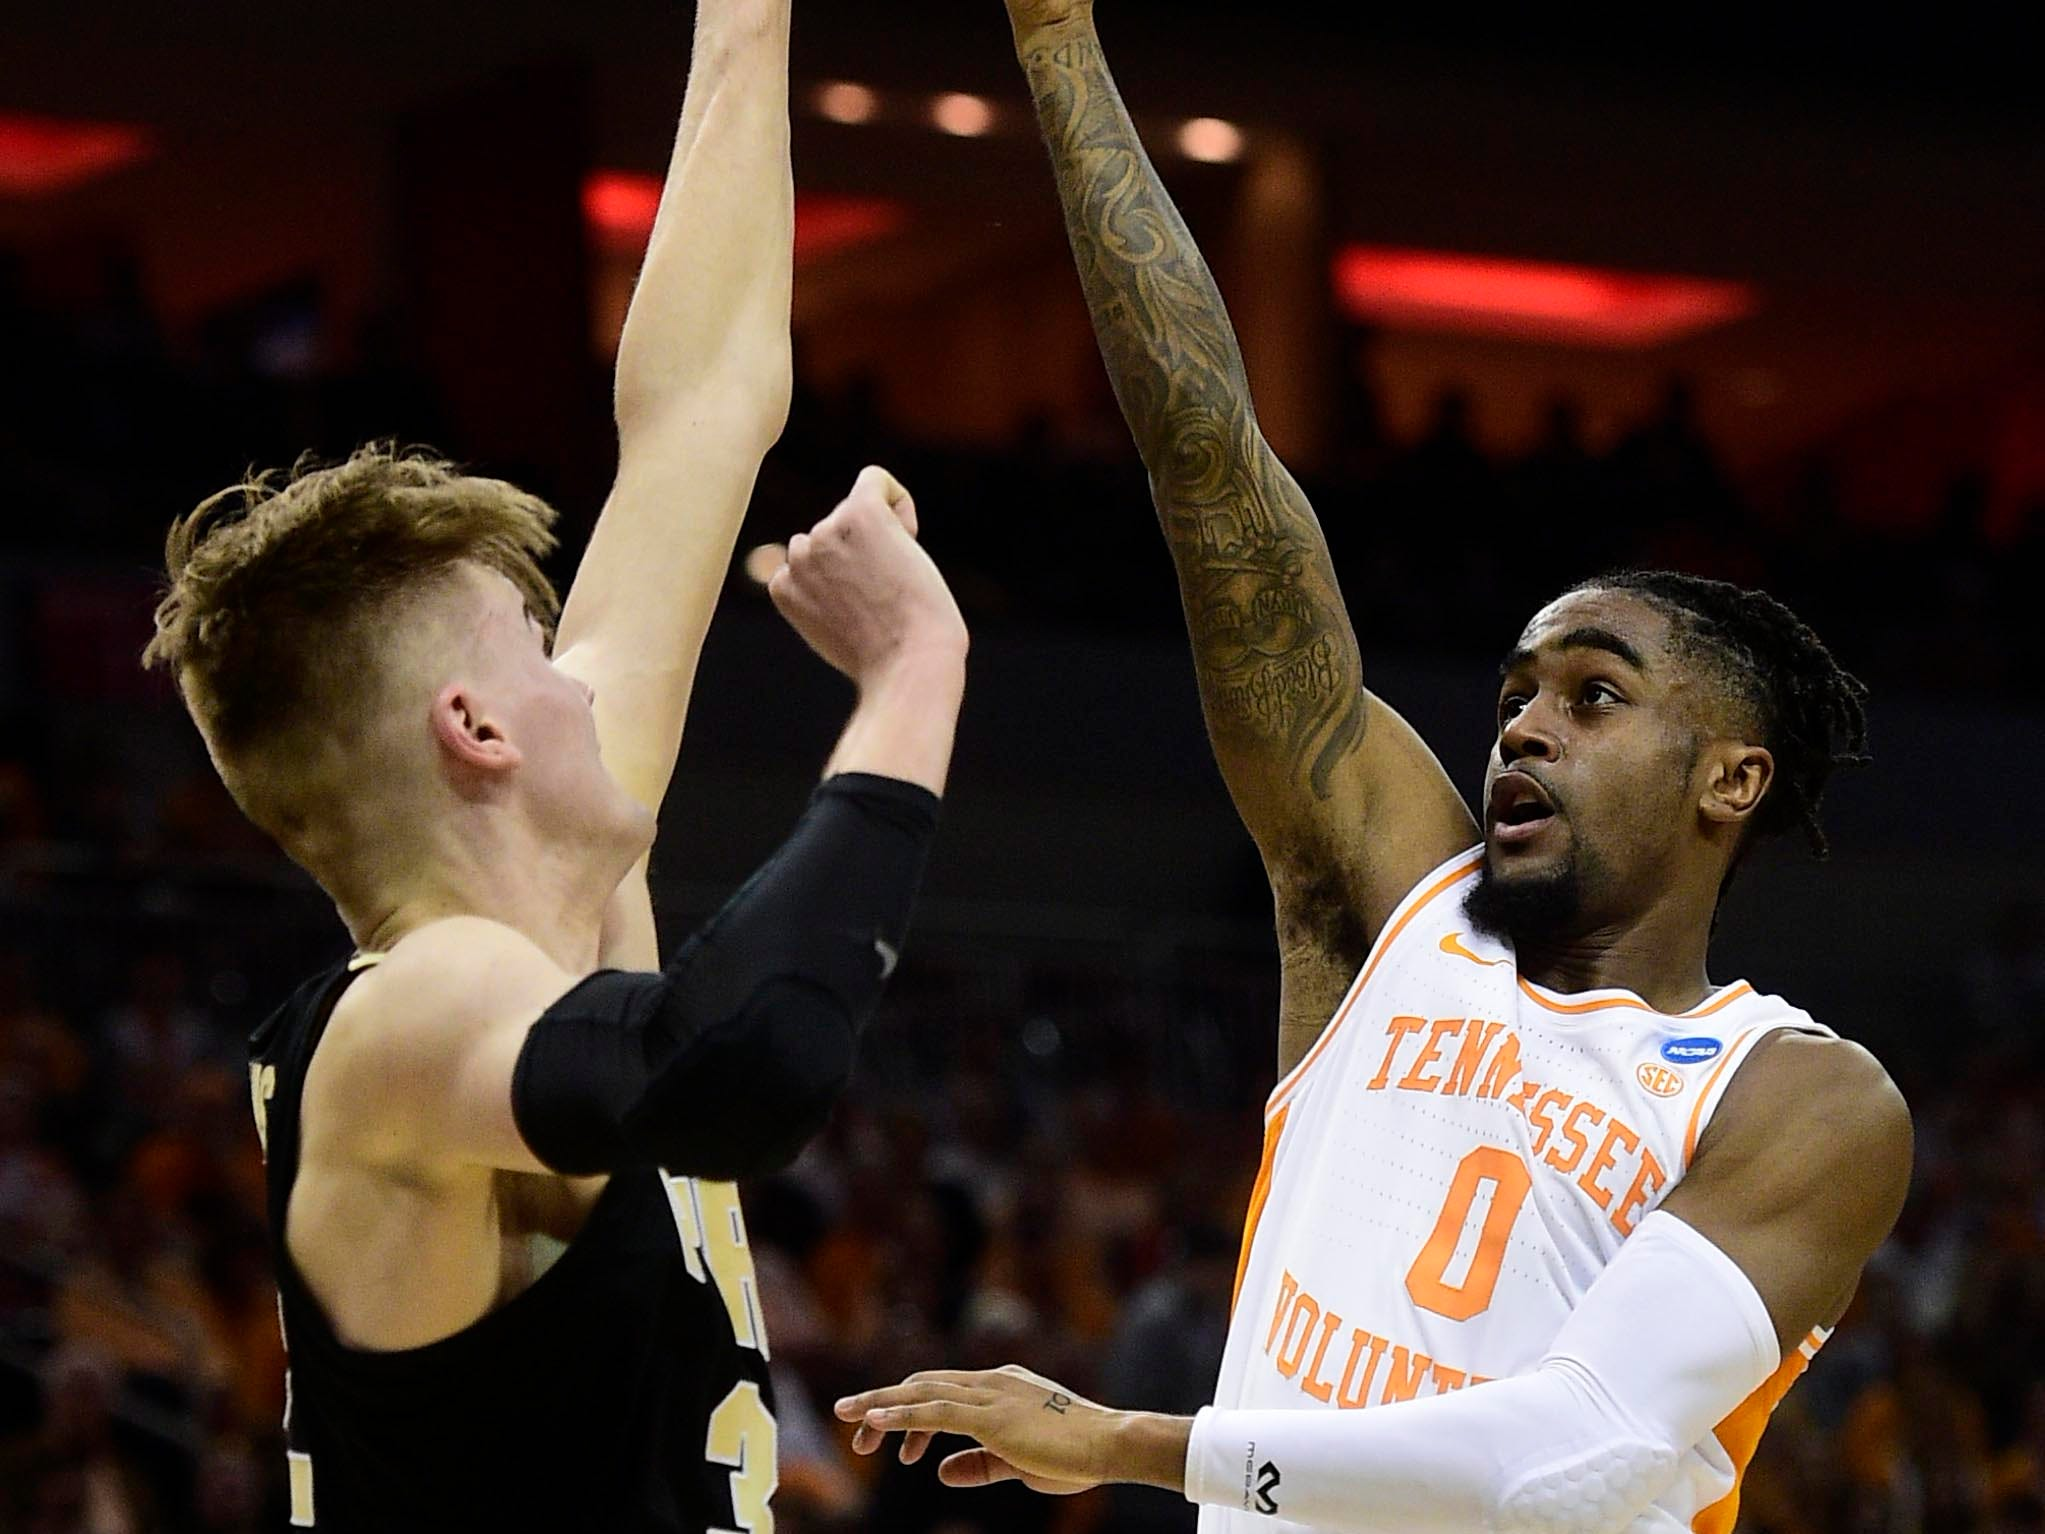 Mar 28, 2019; Louisville, KY, United States; Tennessee Volunteers guard Jordan Bone (0) goes up for a shot as Purdue Boilermakers center Matt Haarms (32) defends during the first half in the semifinals of the south regional of the 2019 NCAA Tournament at KFC Yum Center. Mandatory Credit: Thomas J. Russo-USA TODAY Sports